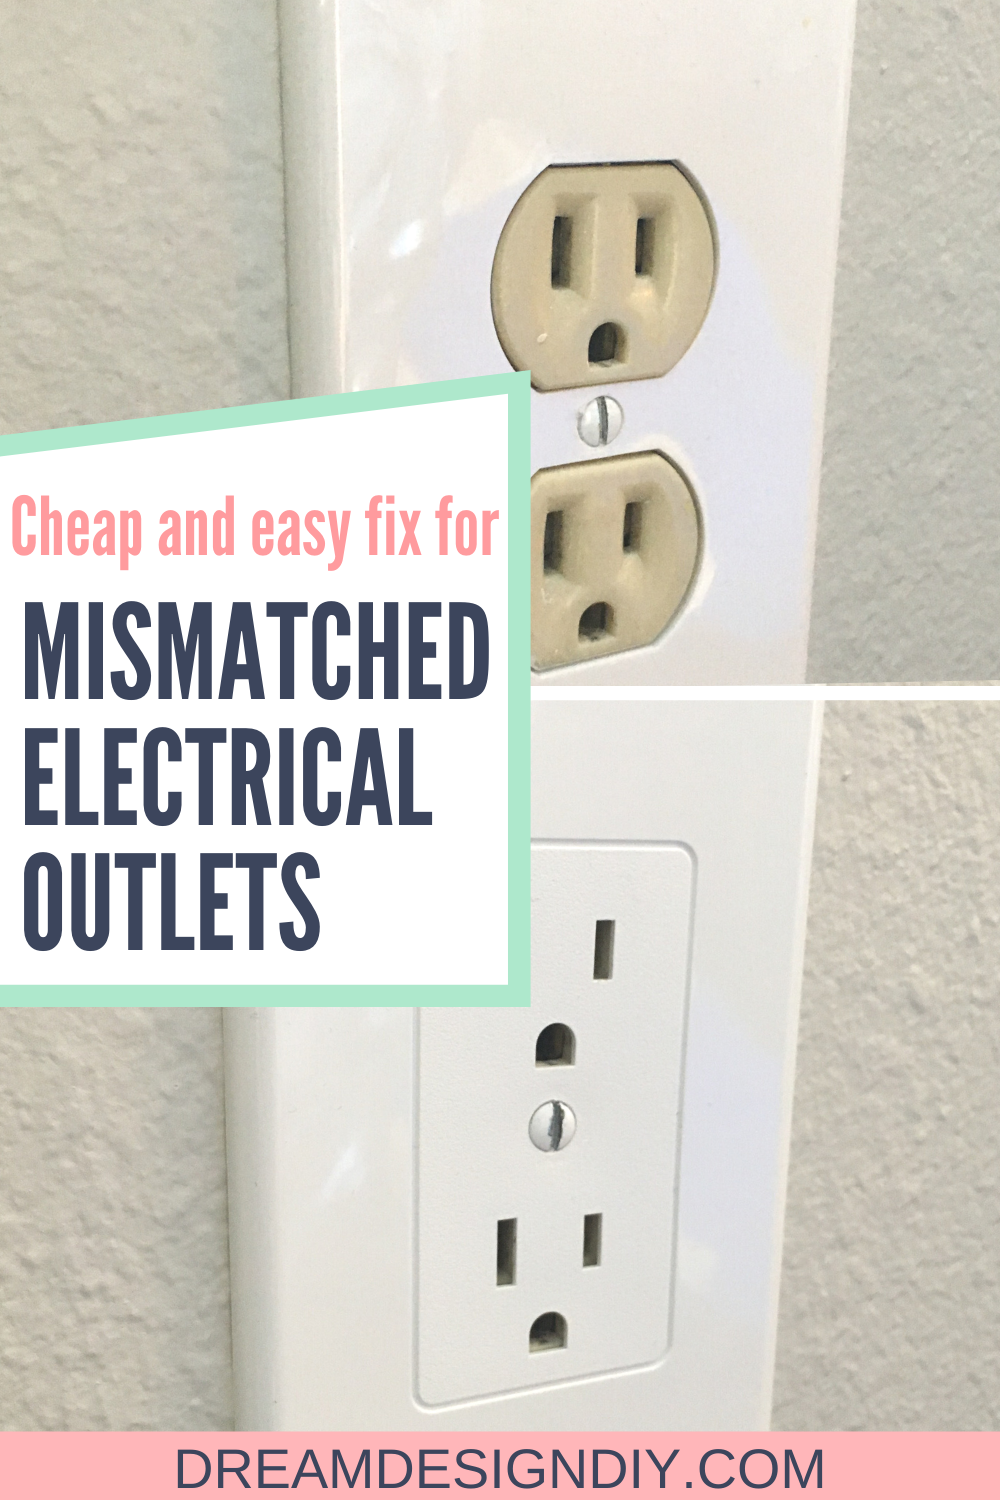 Easy Electrical Outlet Cover Tip To Fix Mismatched Electrical Outlets Dream Design Diy In 2021 Electrical Outlet Covers Dollar Store Diy Electrical Outlets